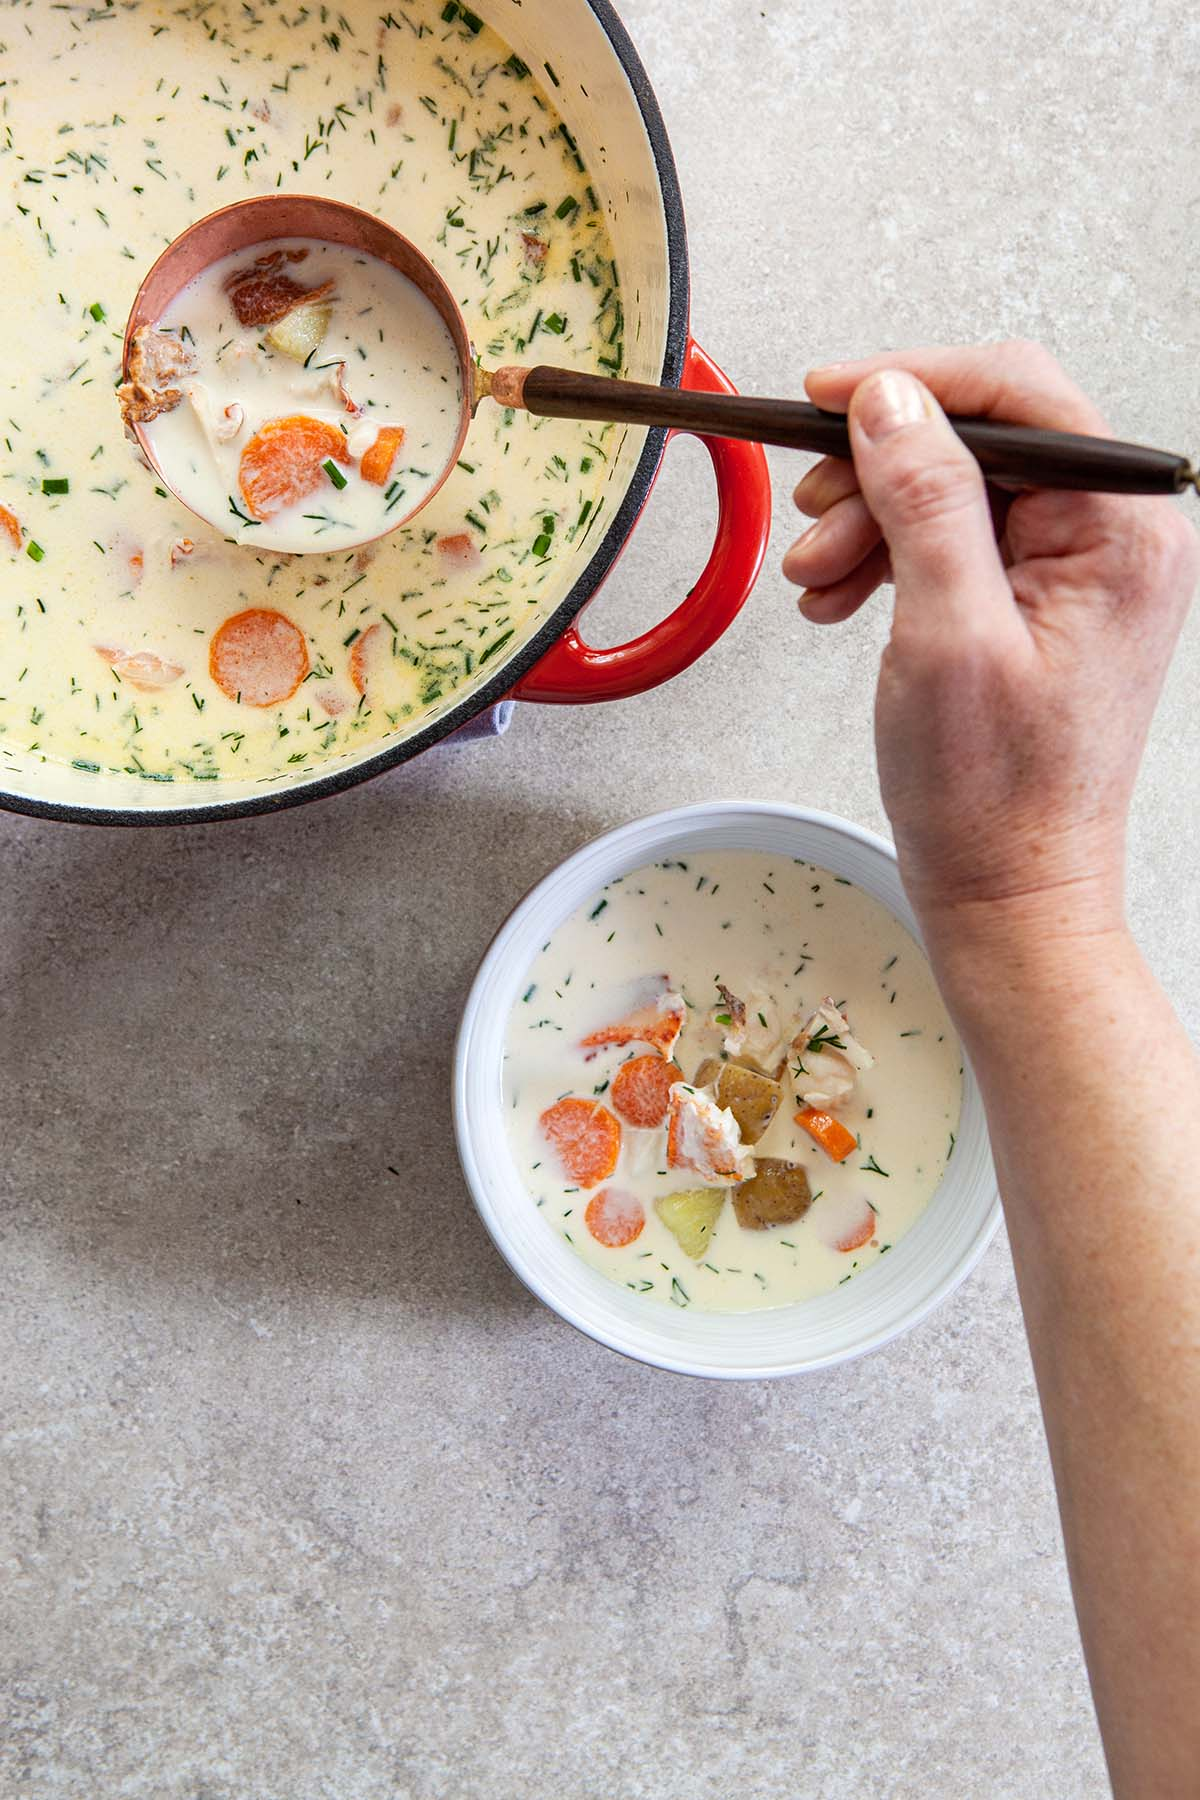 A woman's hand holding a ladle full of chowder from a large orange pot with a bowl of chowder on the table below.